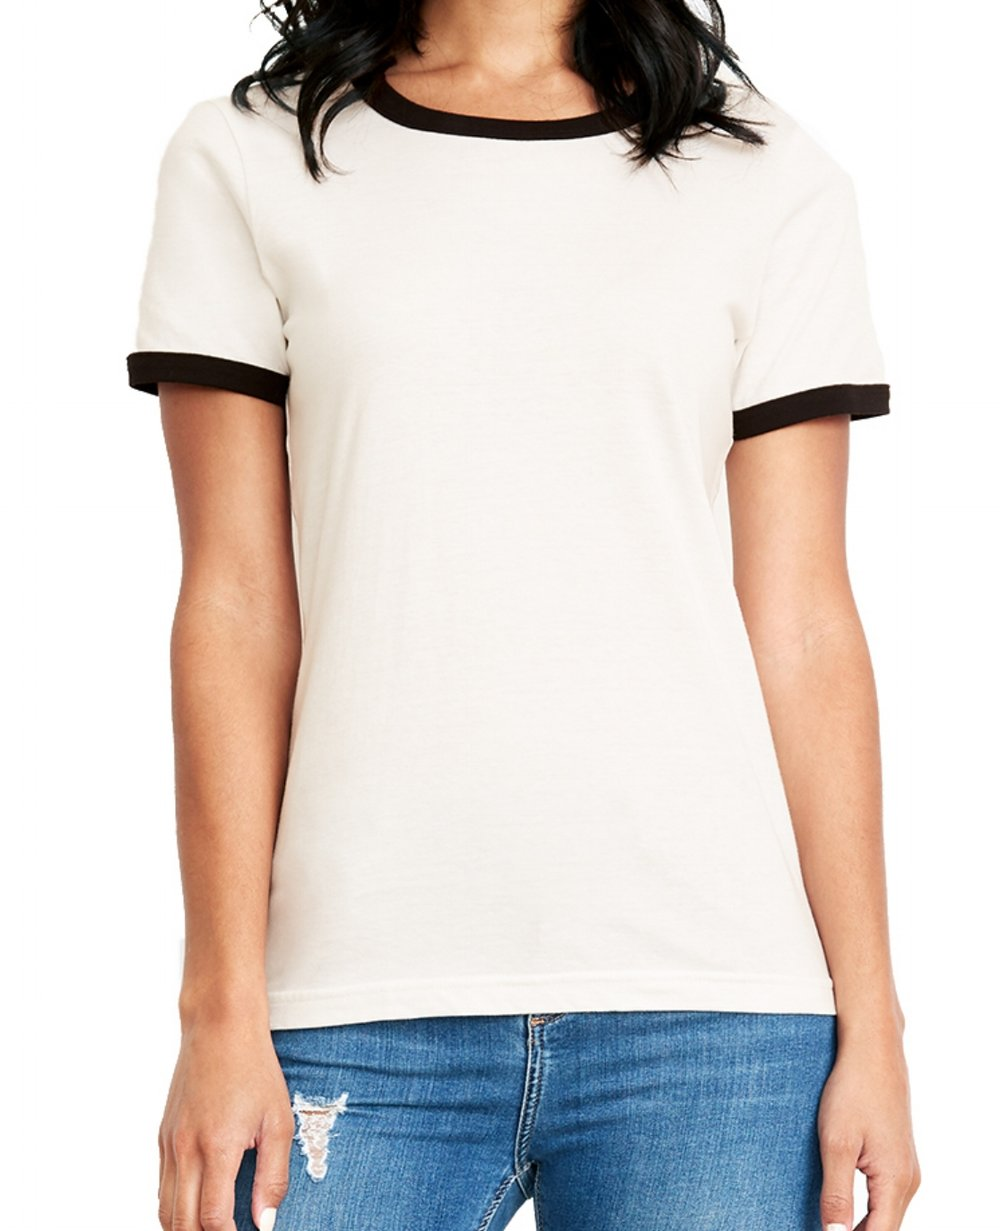 Women's cotton ringer t-shirt (100% cotton, slimmer fit, $$).